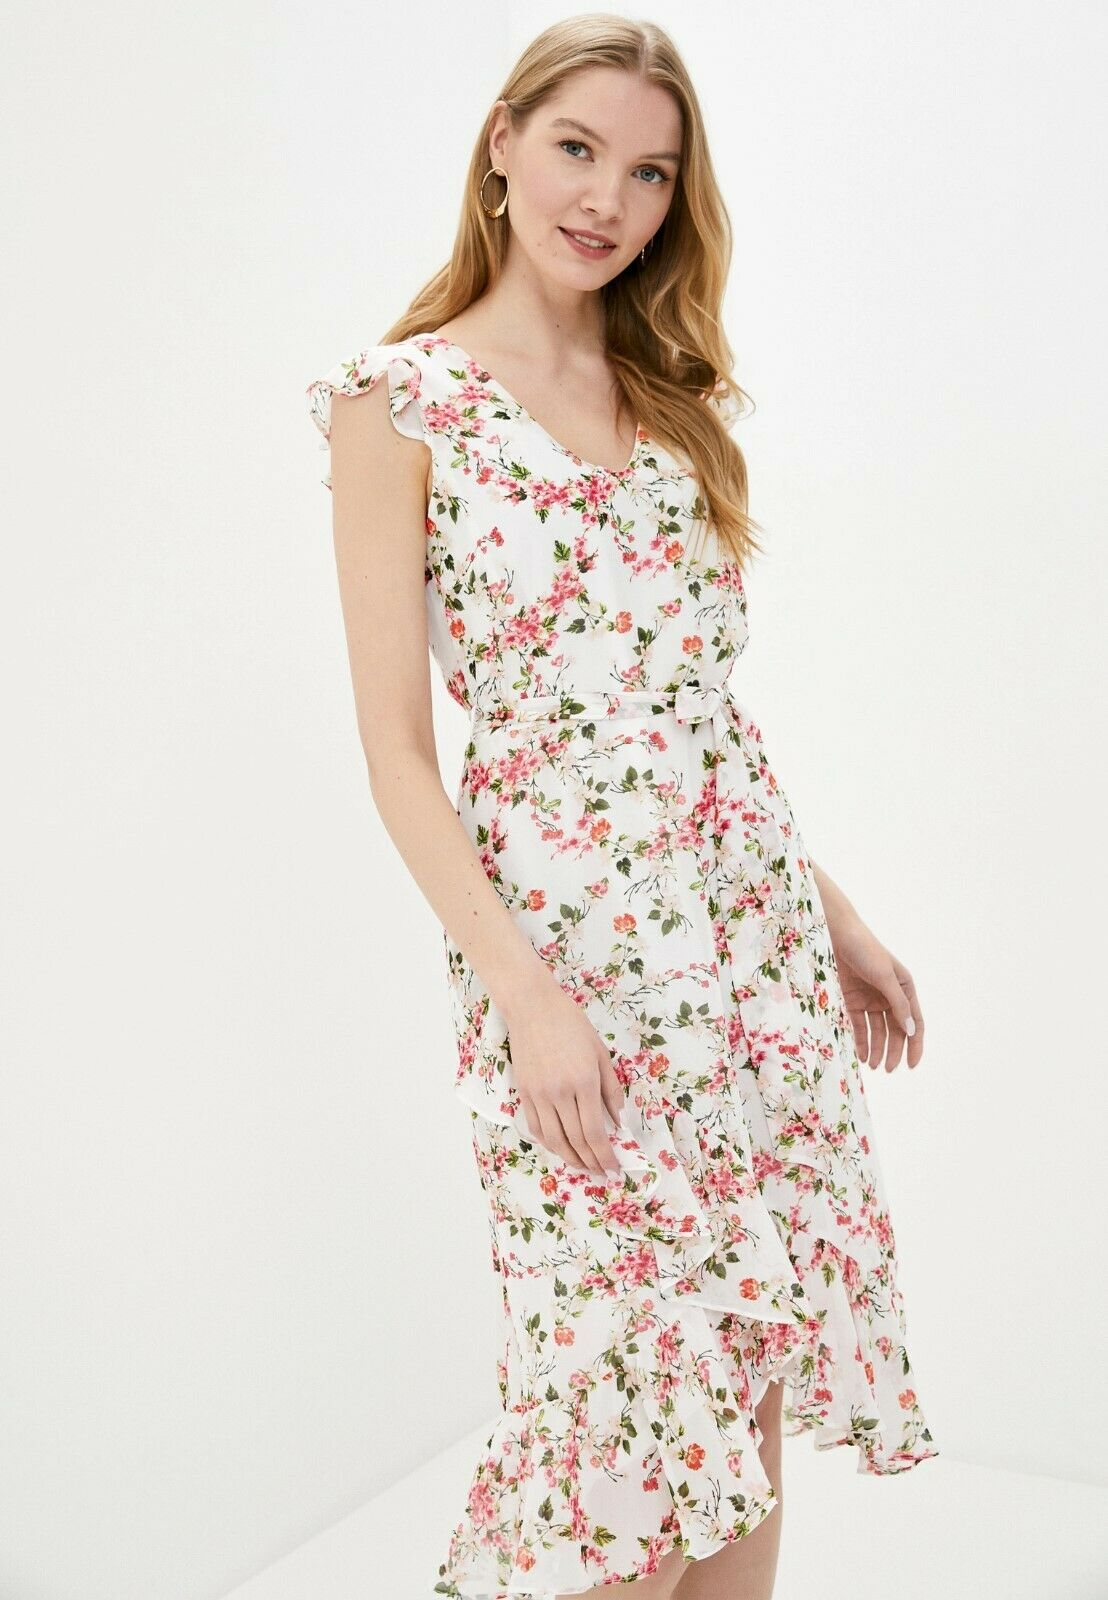 Wallis Pink White Floral V neck Frill Sleeve Fit Flare Summer Party Dress 8-16